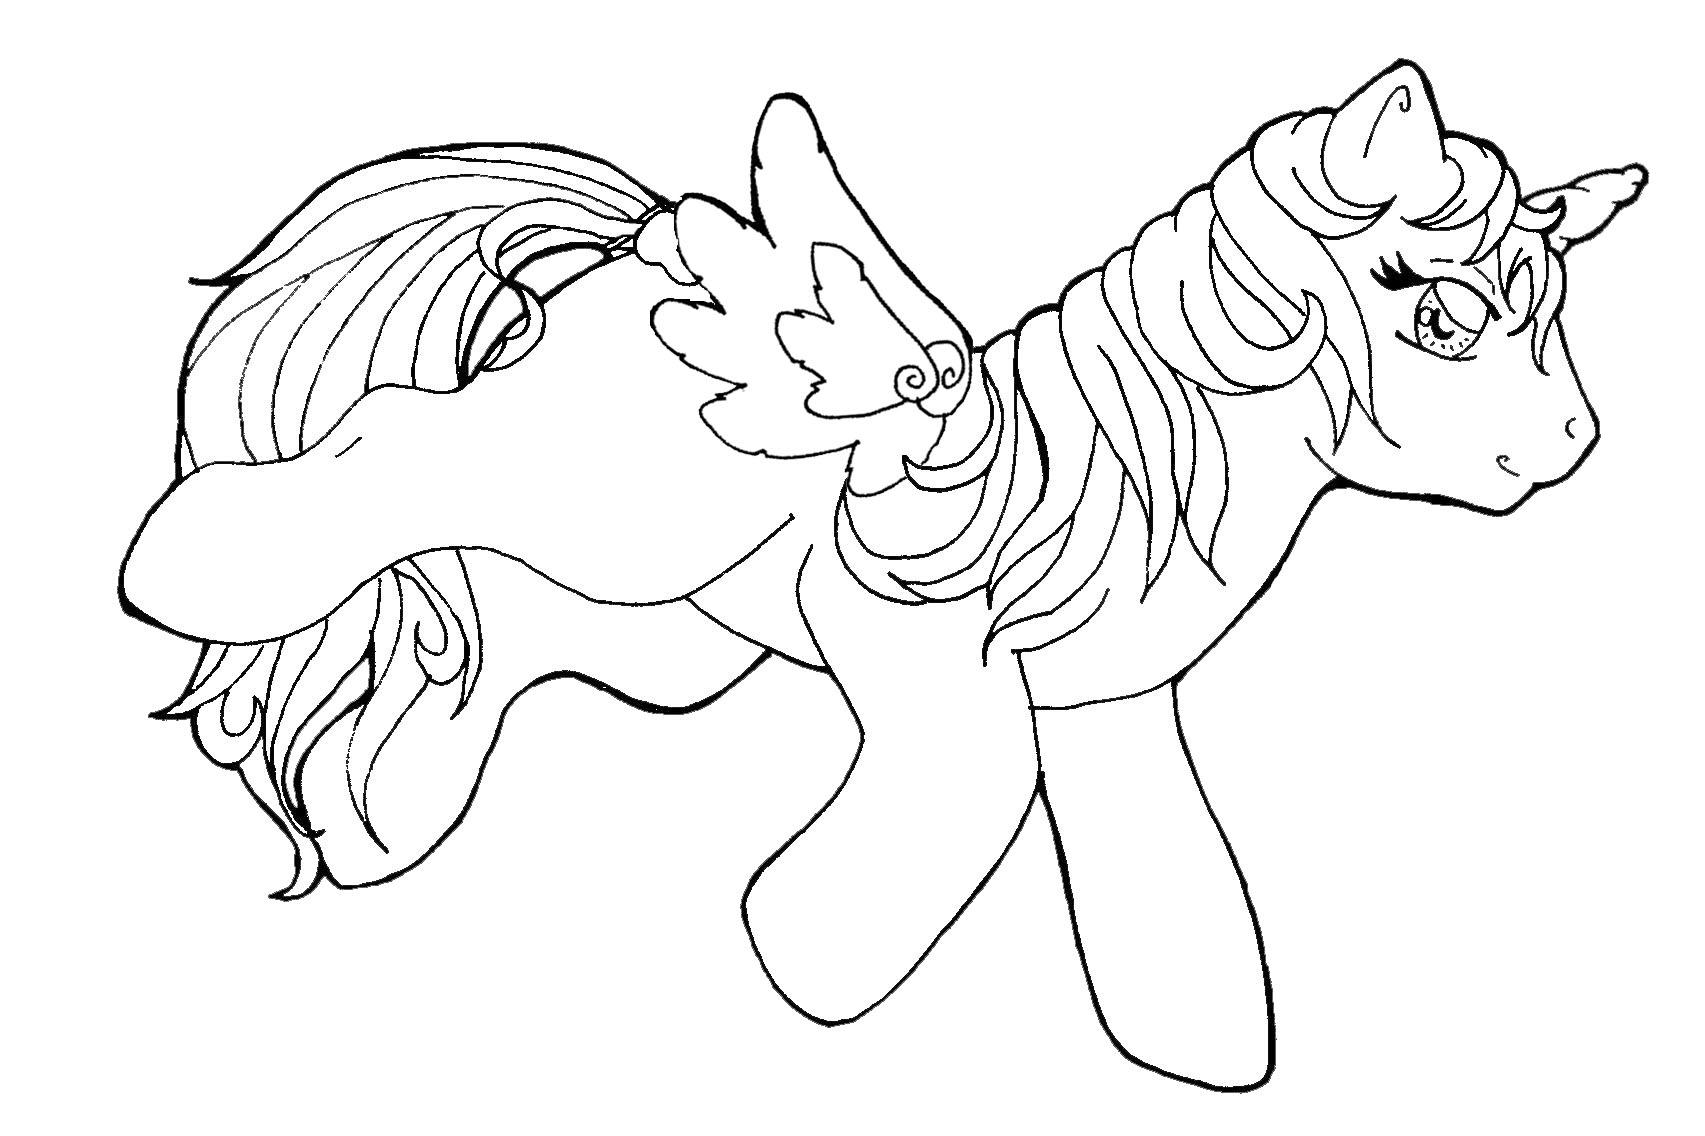 My little pony mermaid coloring pages -  Coloring Pages Animal My Little Pony Lineart Uni By Sweets B On Deviantart